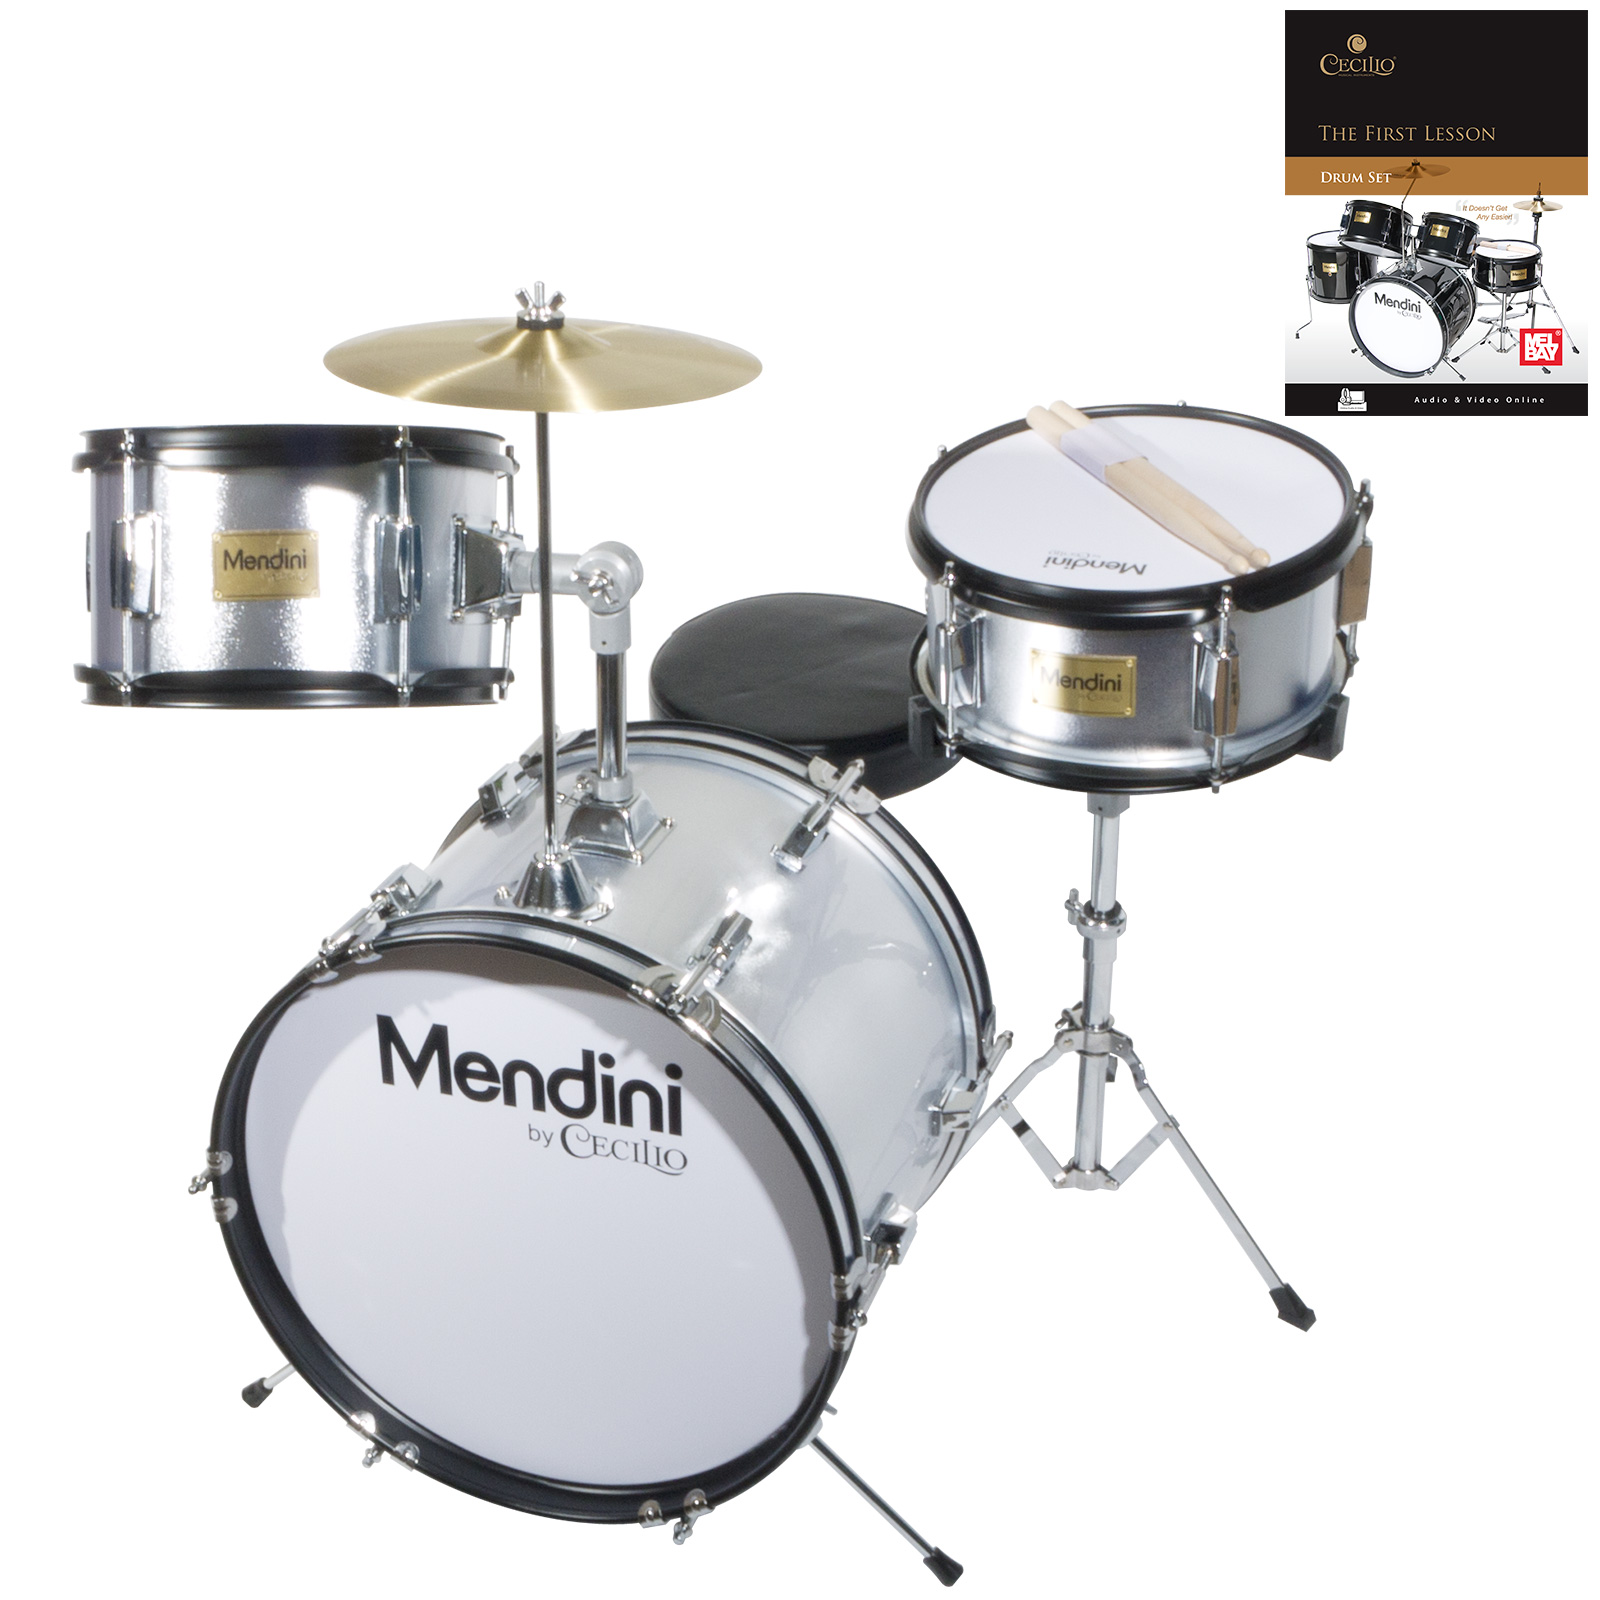 "Mendini by Cecilio 16"" 3-Piece Kids / Junior Drum Set with Adjustable Throne, Cymbal, Pedal, Drumsticks & Lesson Book, Metallic Silver, MJDS-3-SR"